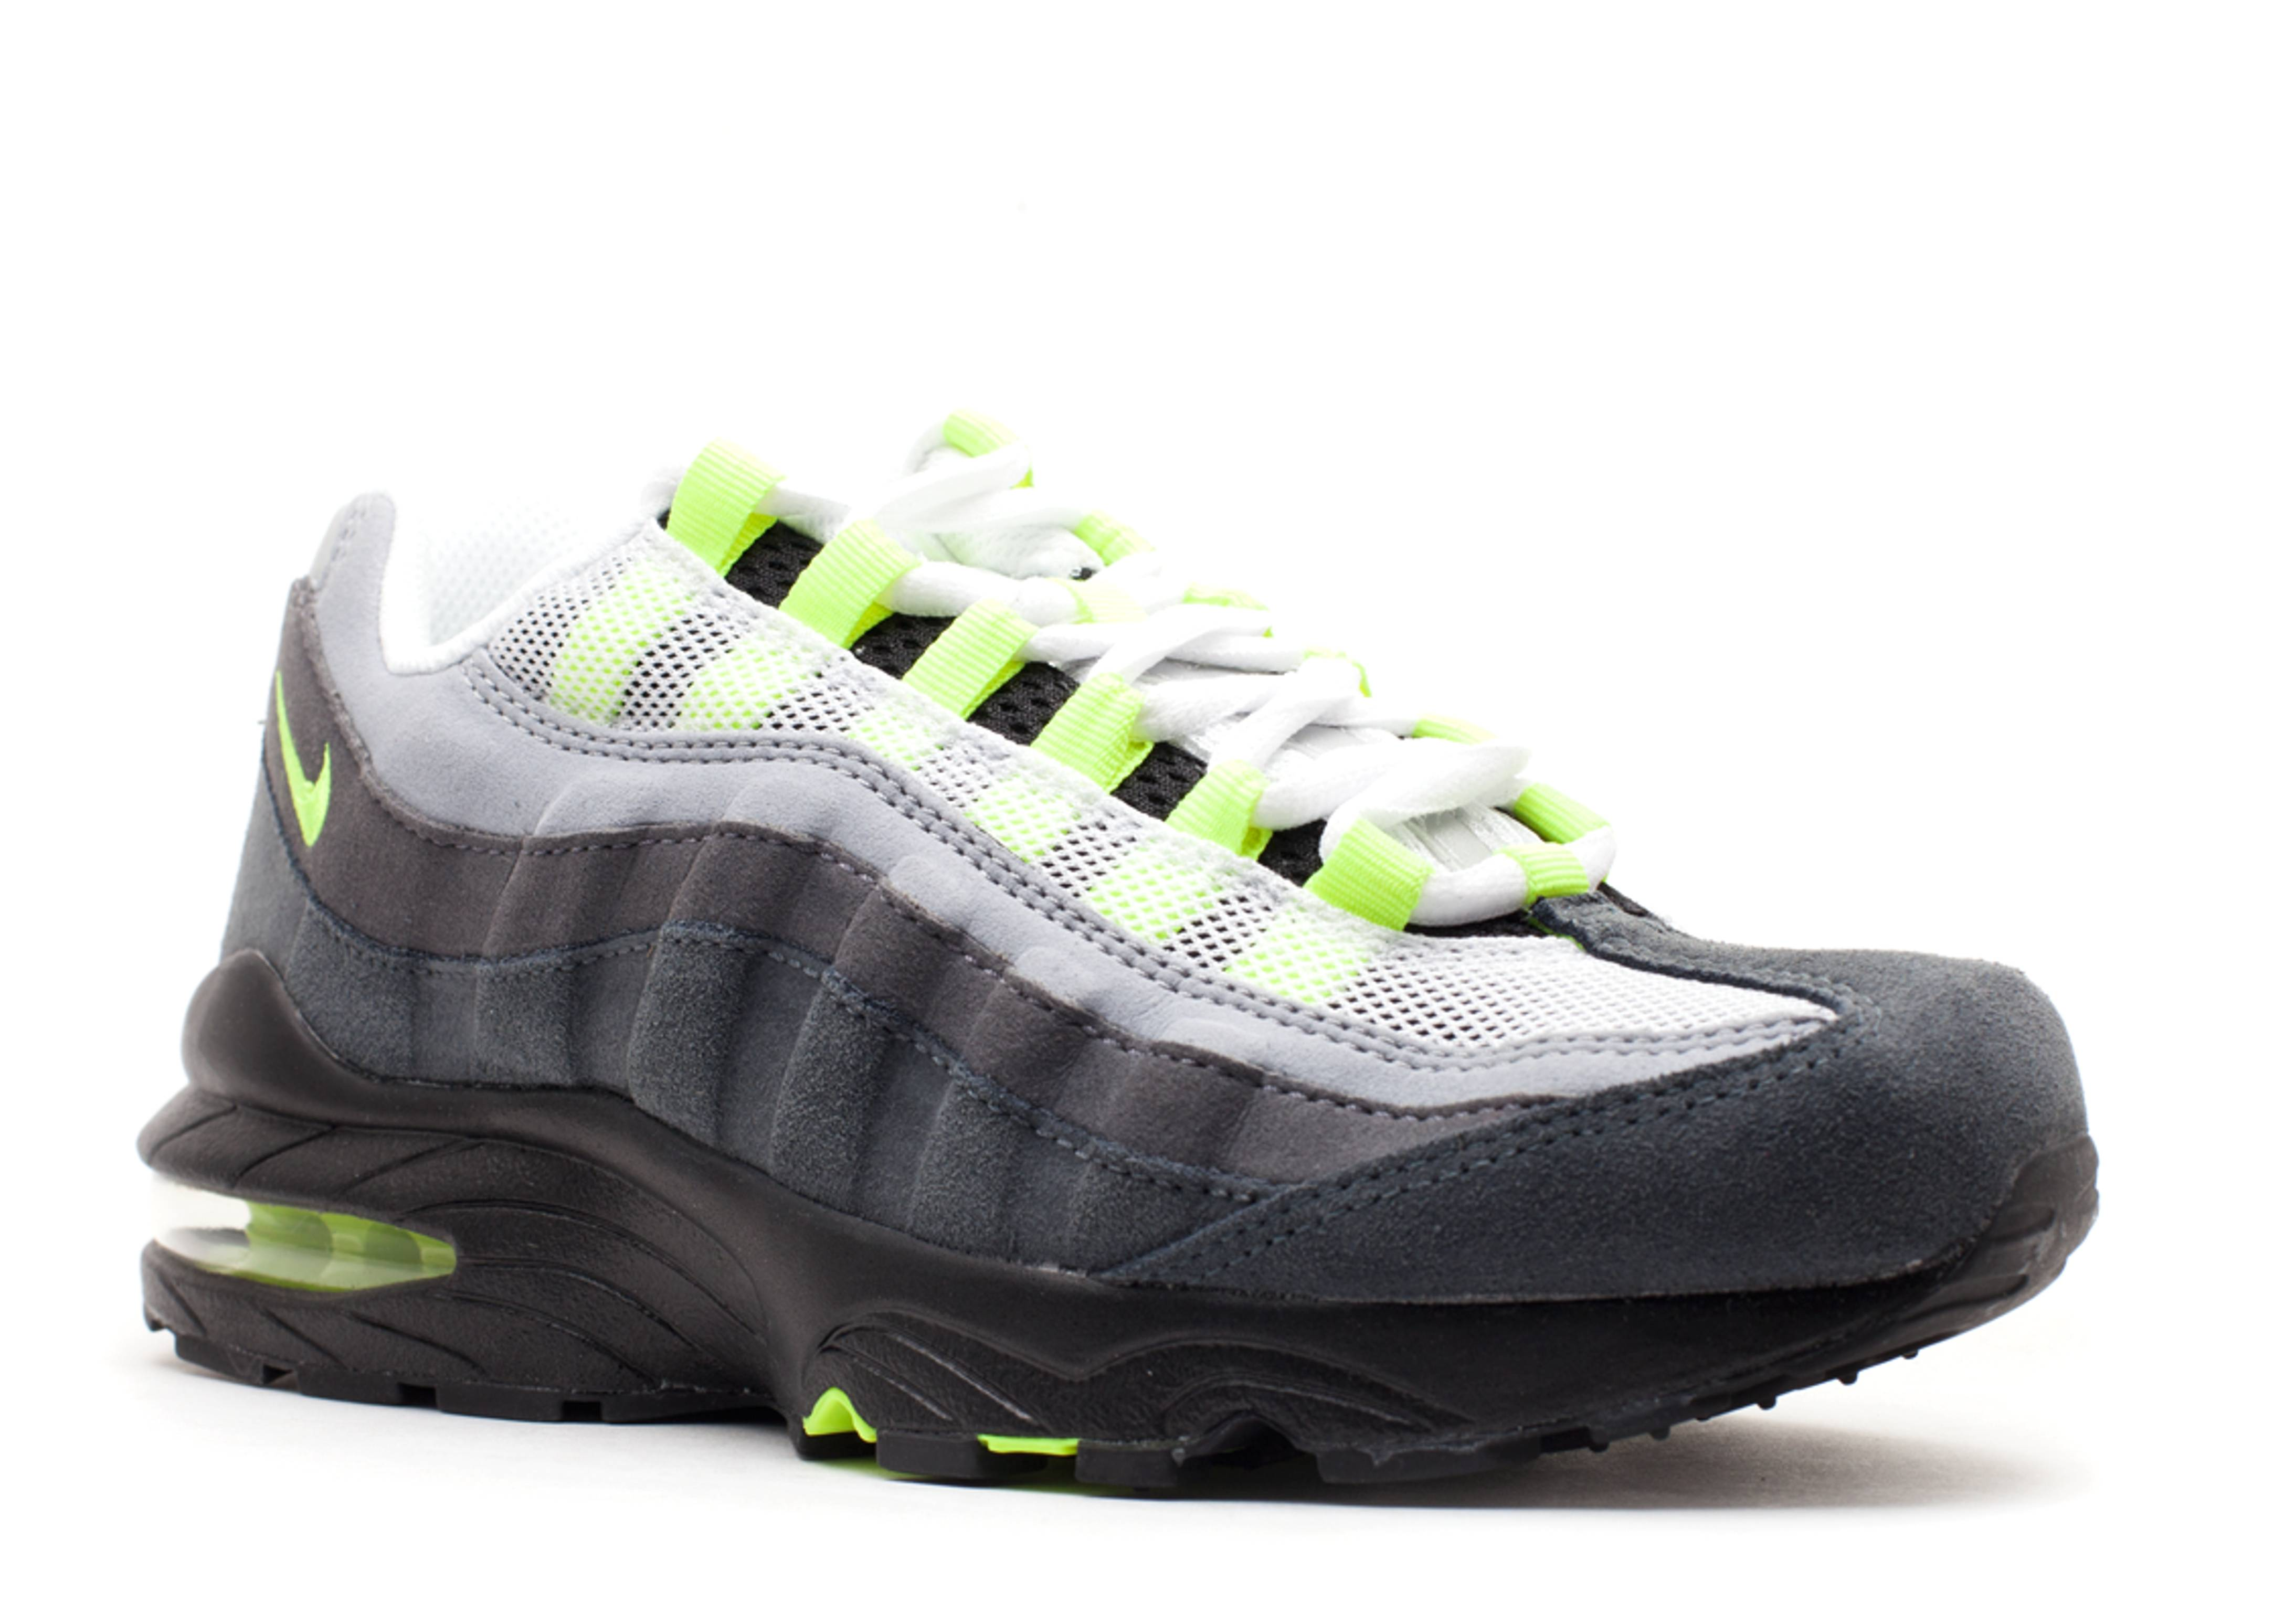 ff54b8d839ed Nike Air Max 1 Shoes Neon Yellow   The Centre for Contemporary History